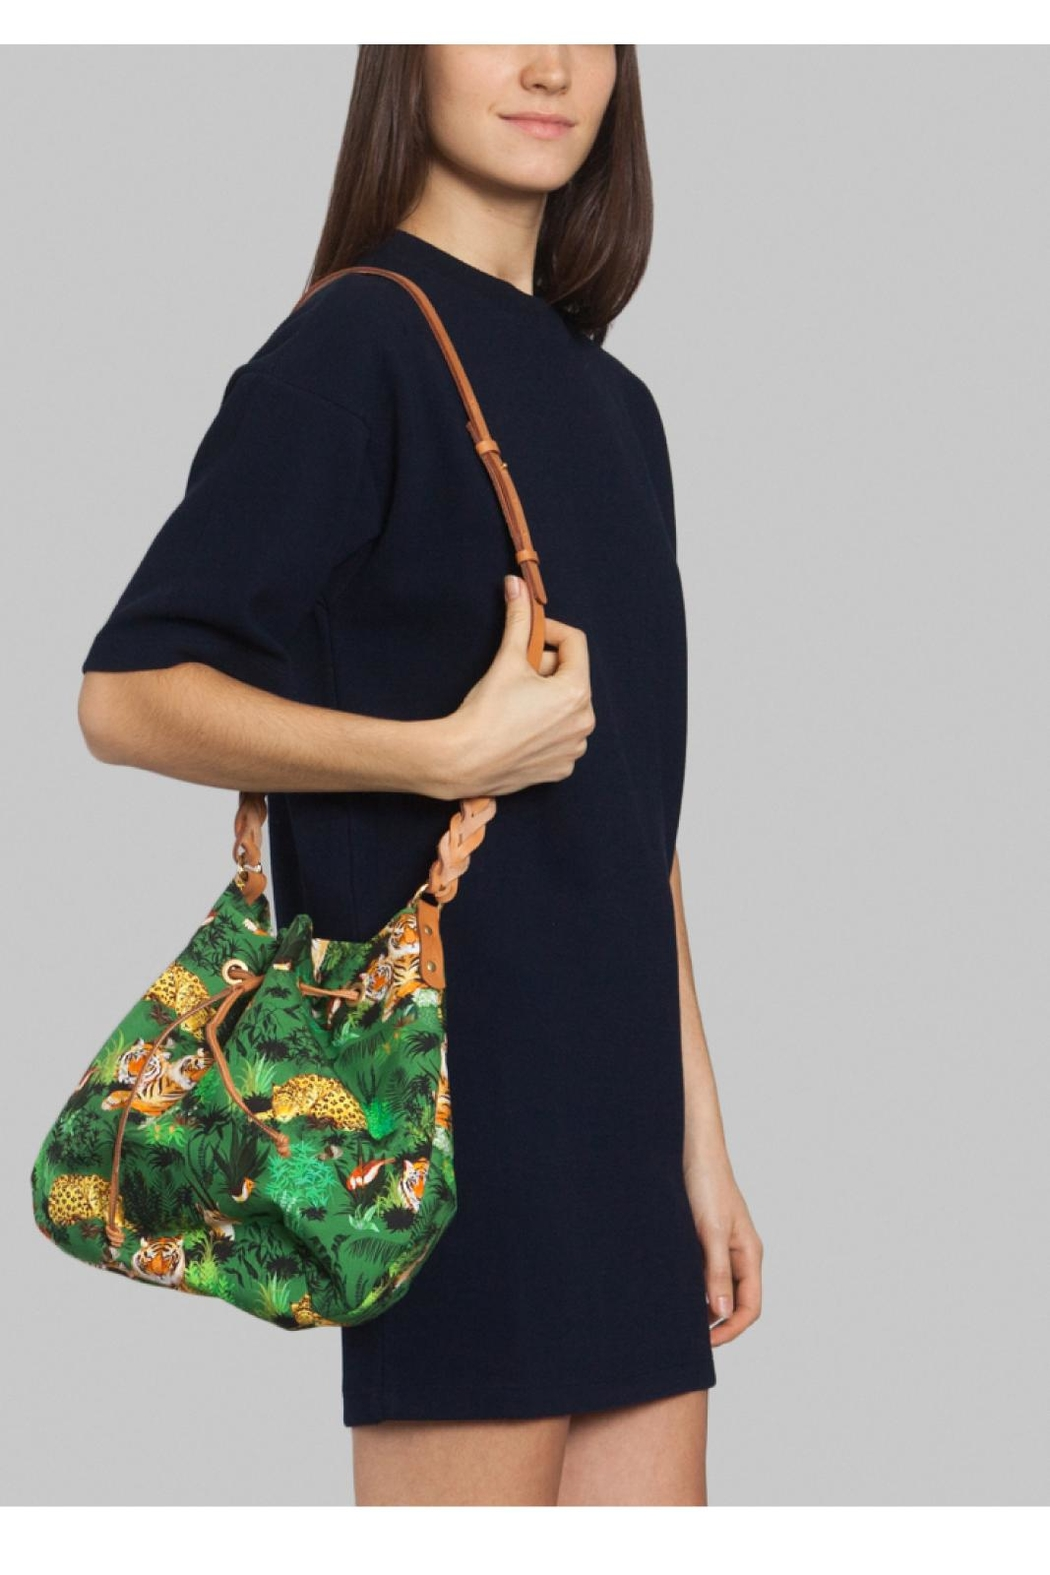 Maison Baluchon Printed Jungle Bag - Front Full Image